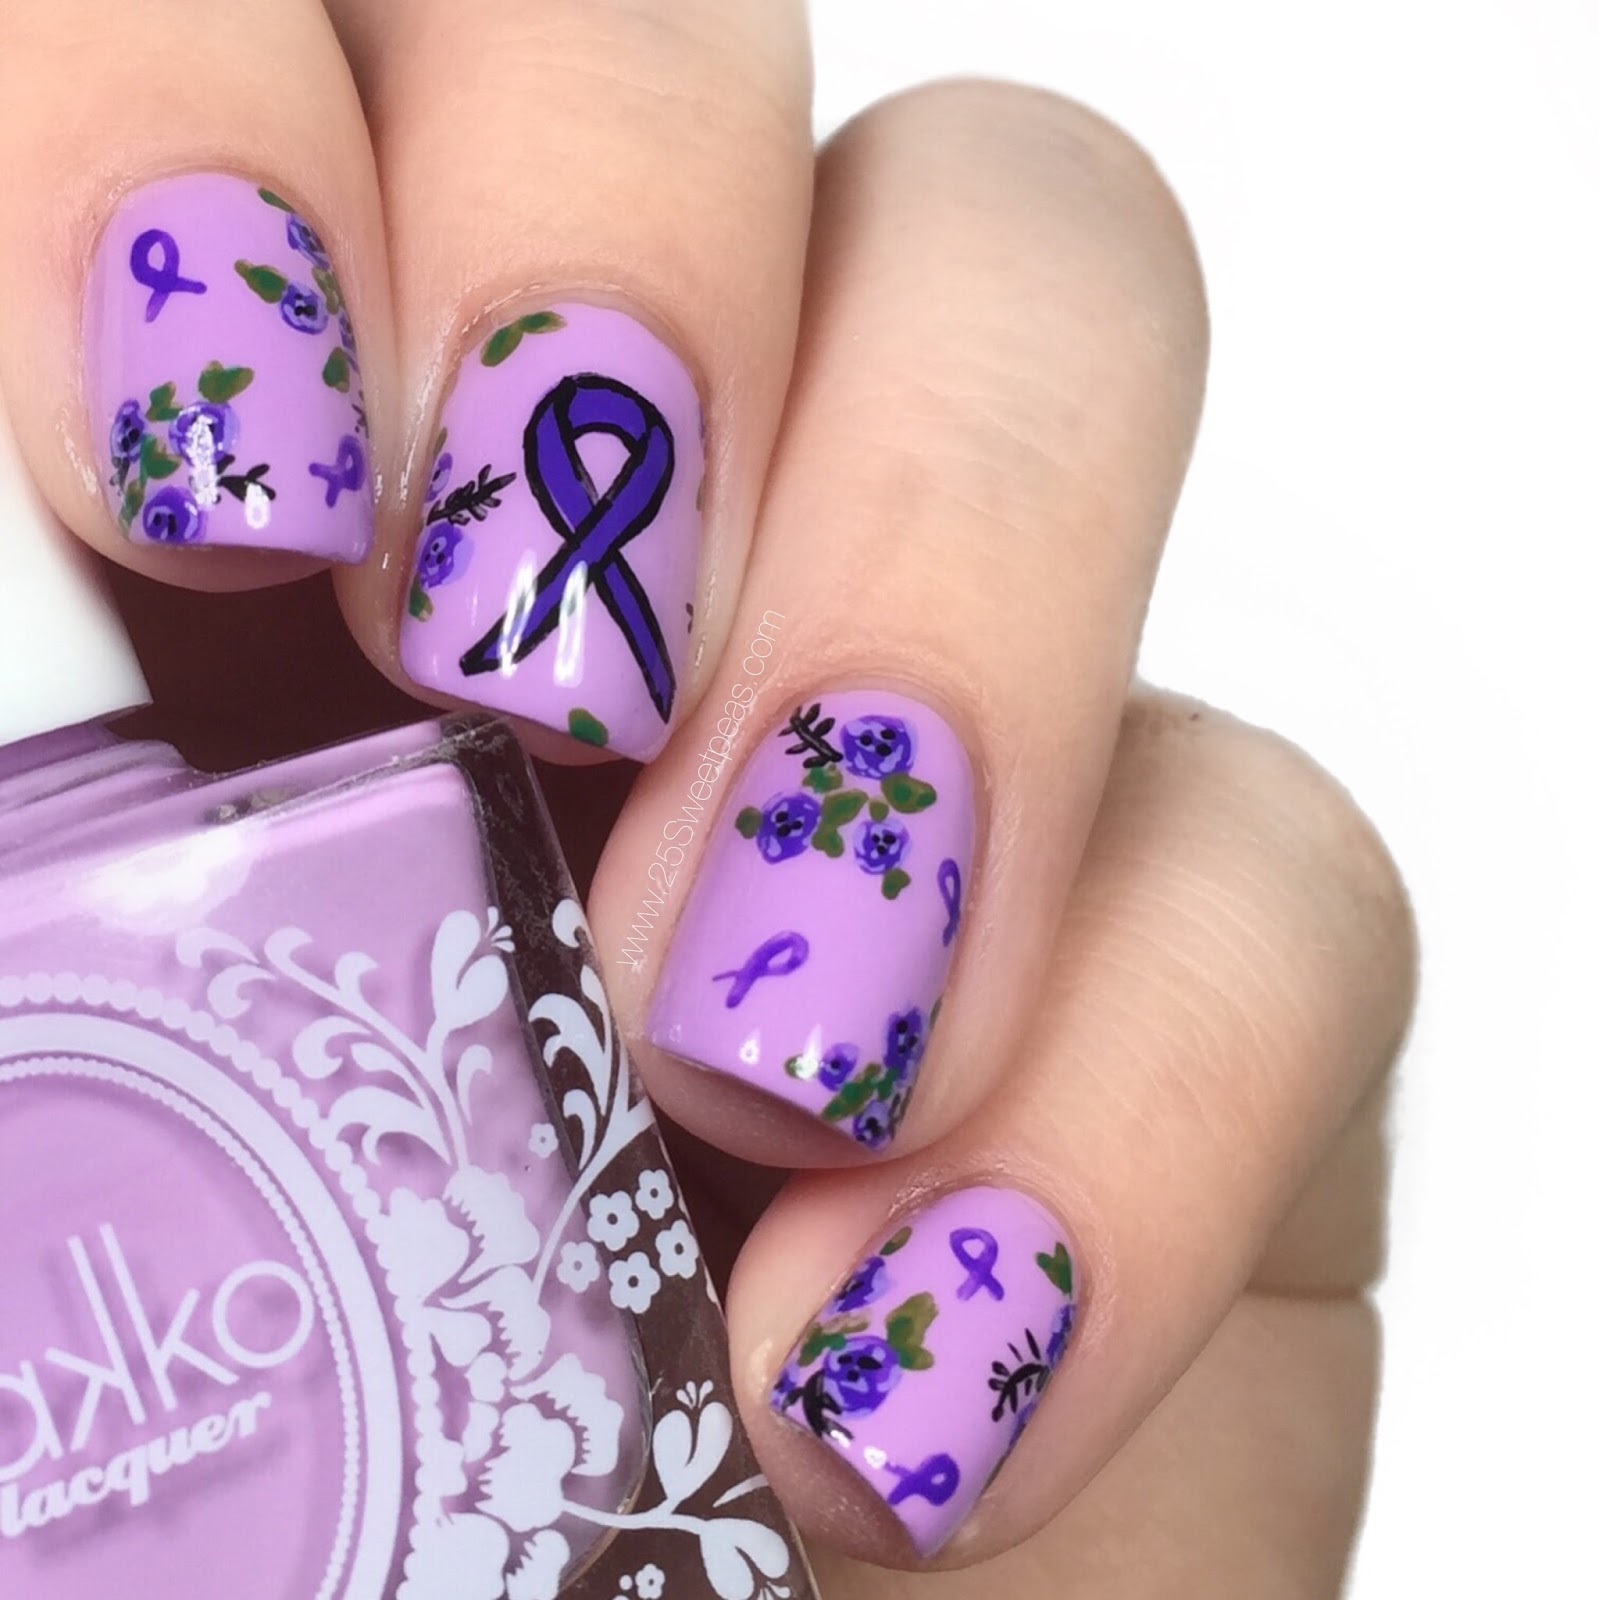 Pancreatic Cancer Awareness Nails